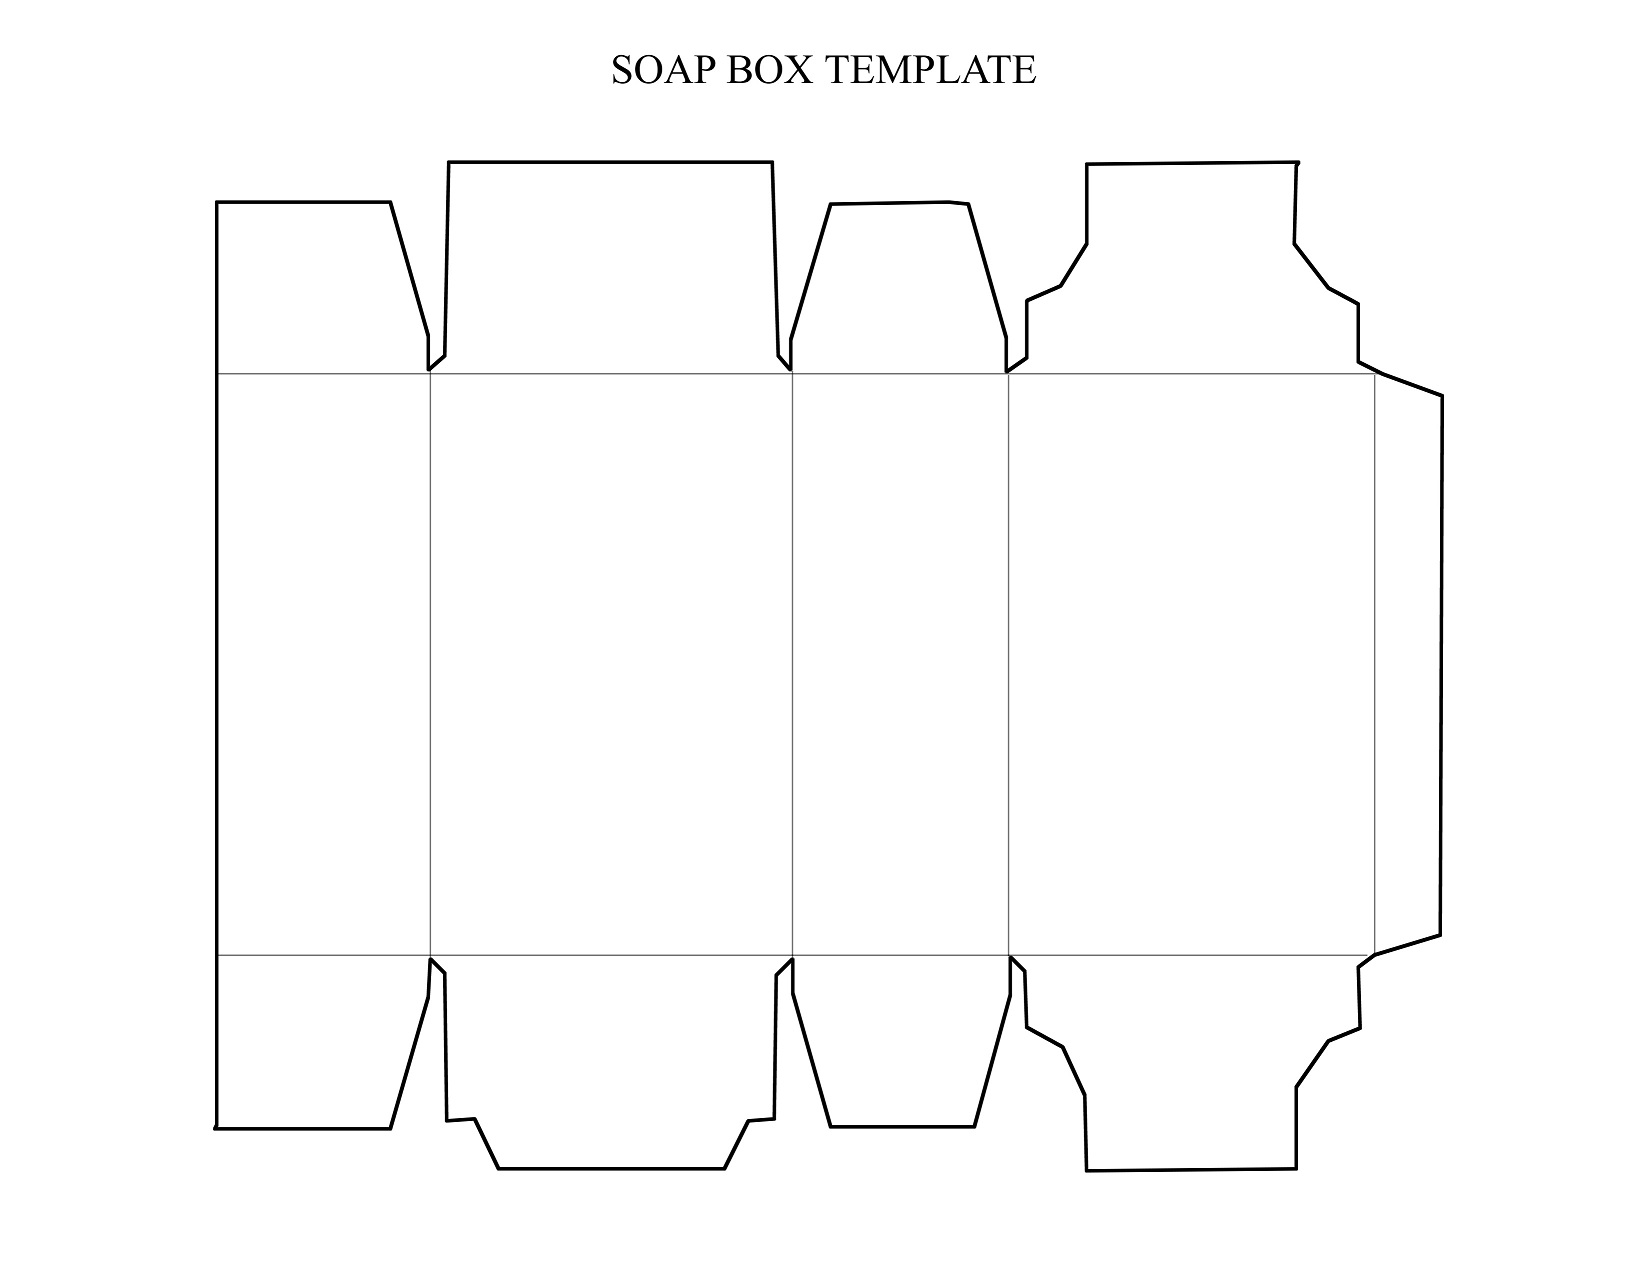 soap box design template - laser engraver downloadable projects examples laser